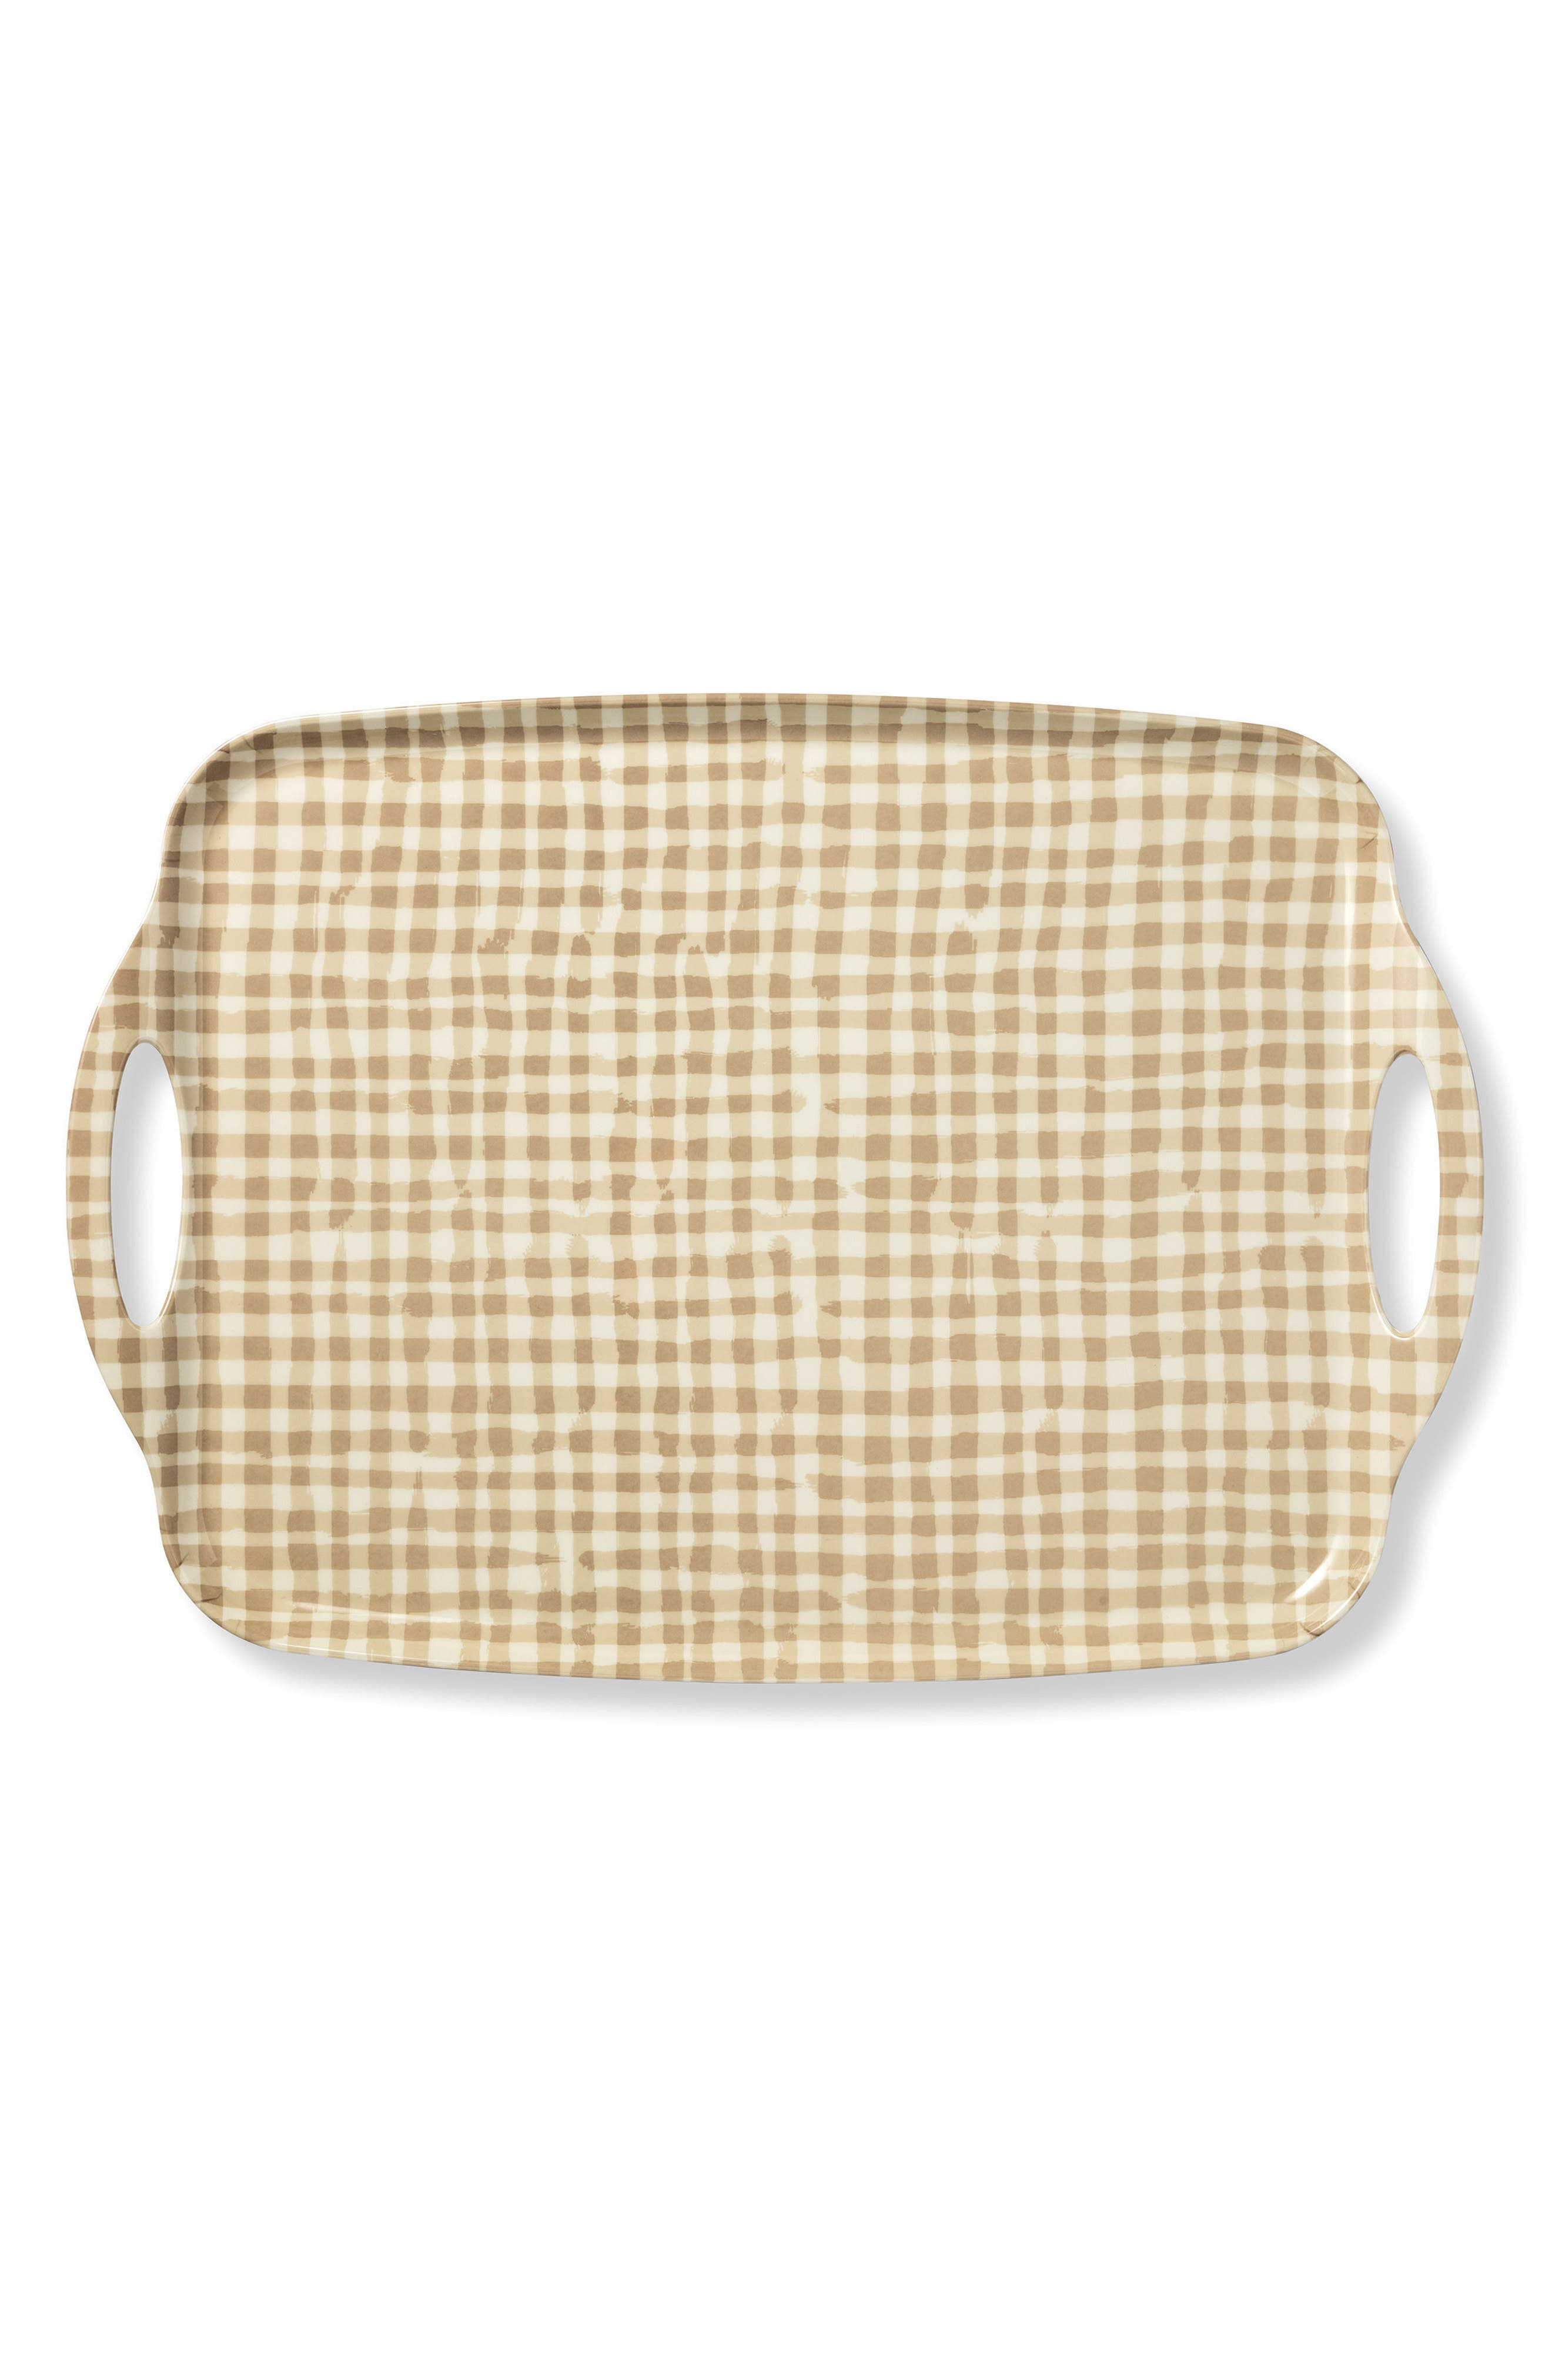 gingham serving tray,                         Main,                         color, Gingham